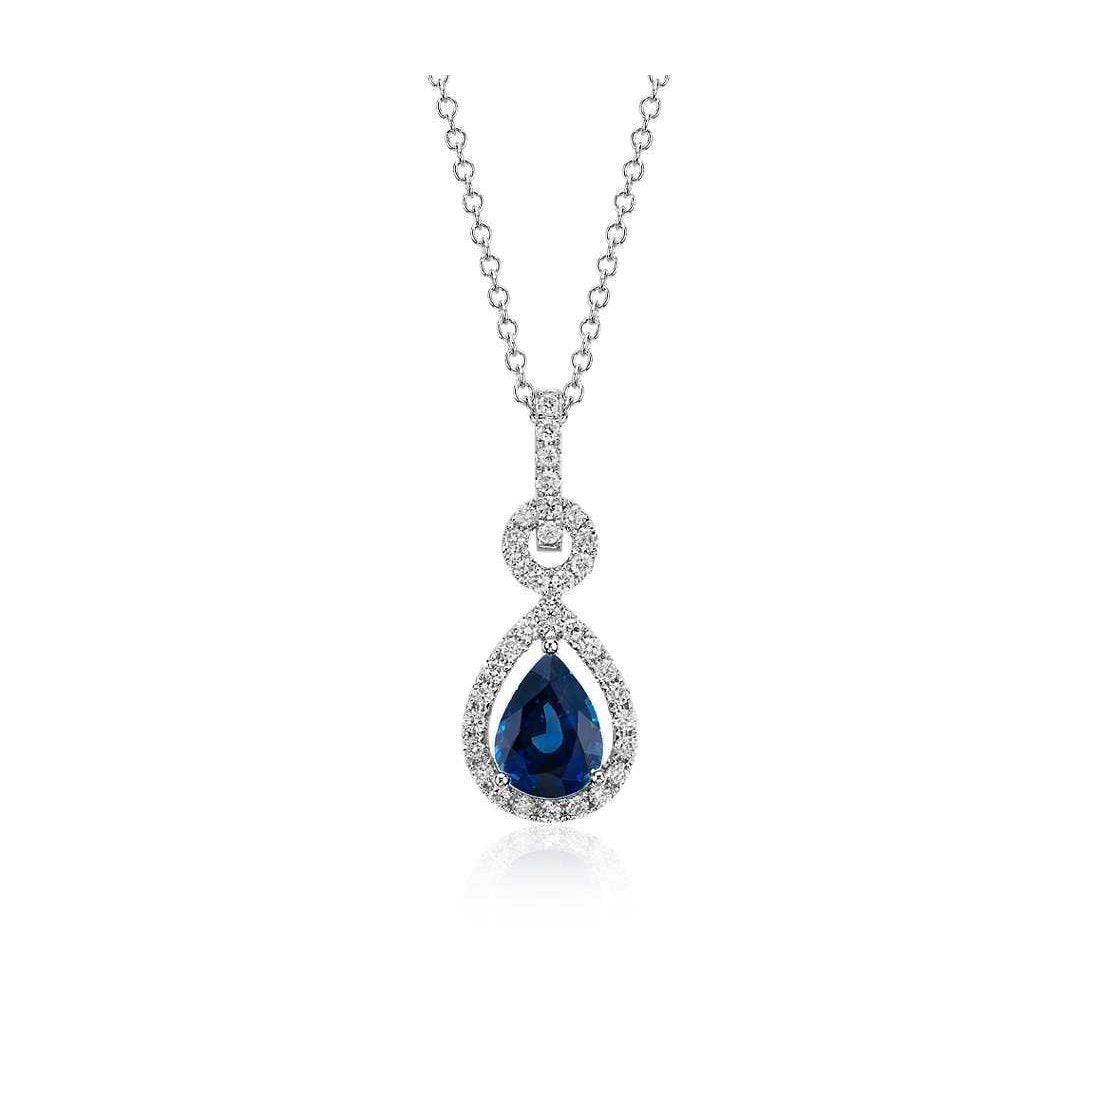 Pear Cut Sri Lankan Sapphire Diamonds 3.25 Ct Pendant Necklace Gemstone Pendant